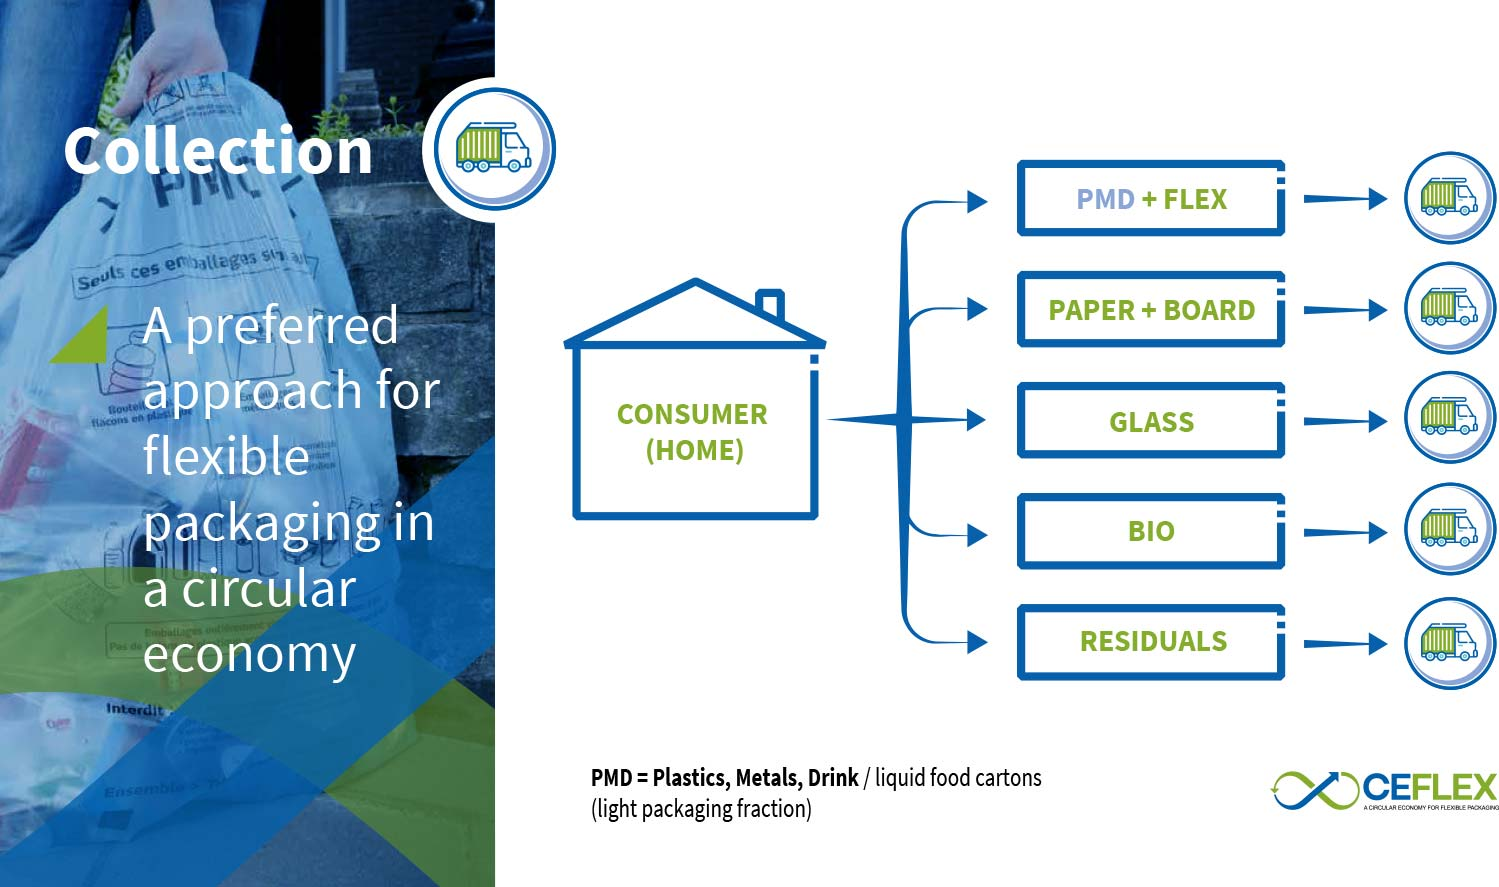 Schematic: A preferred approach for flexible packaging in a circular economy